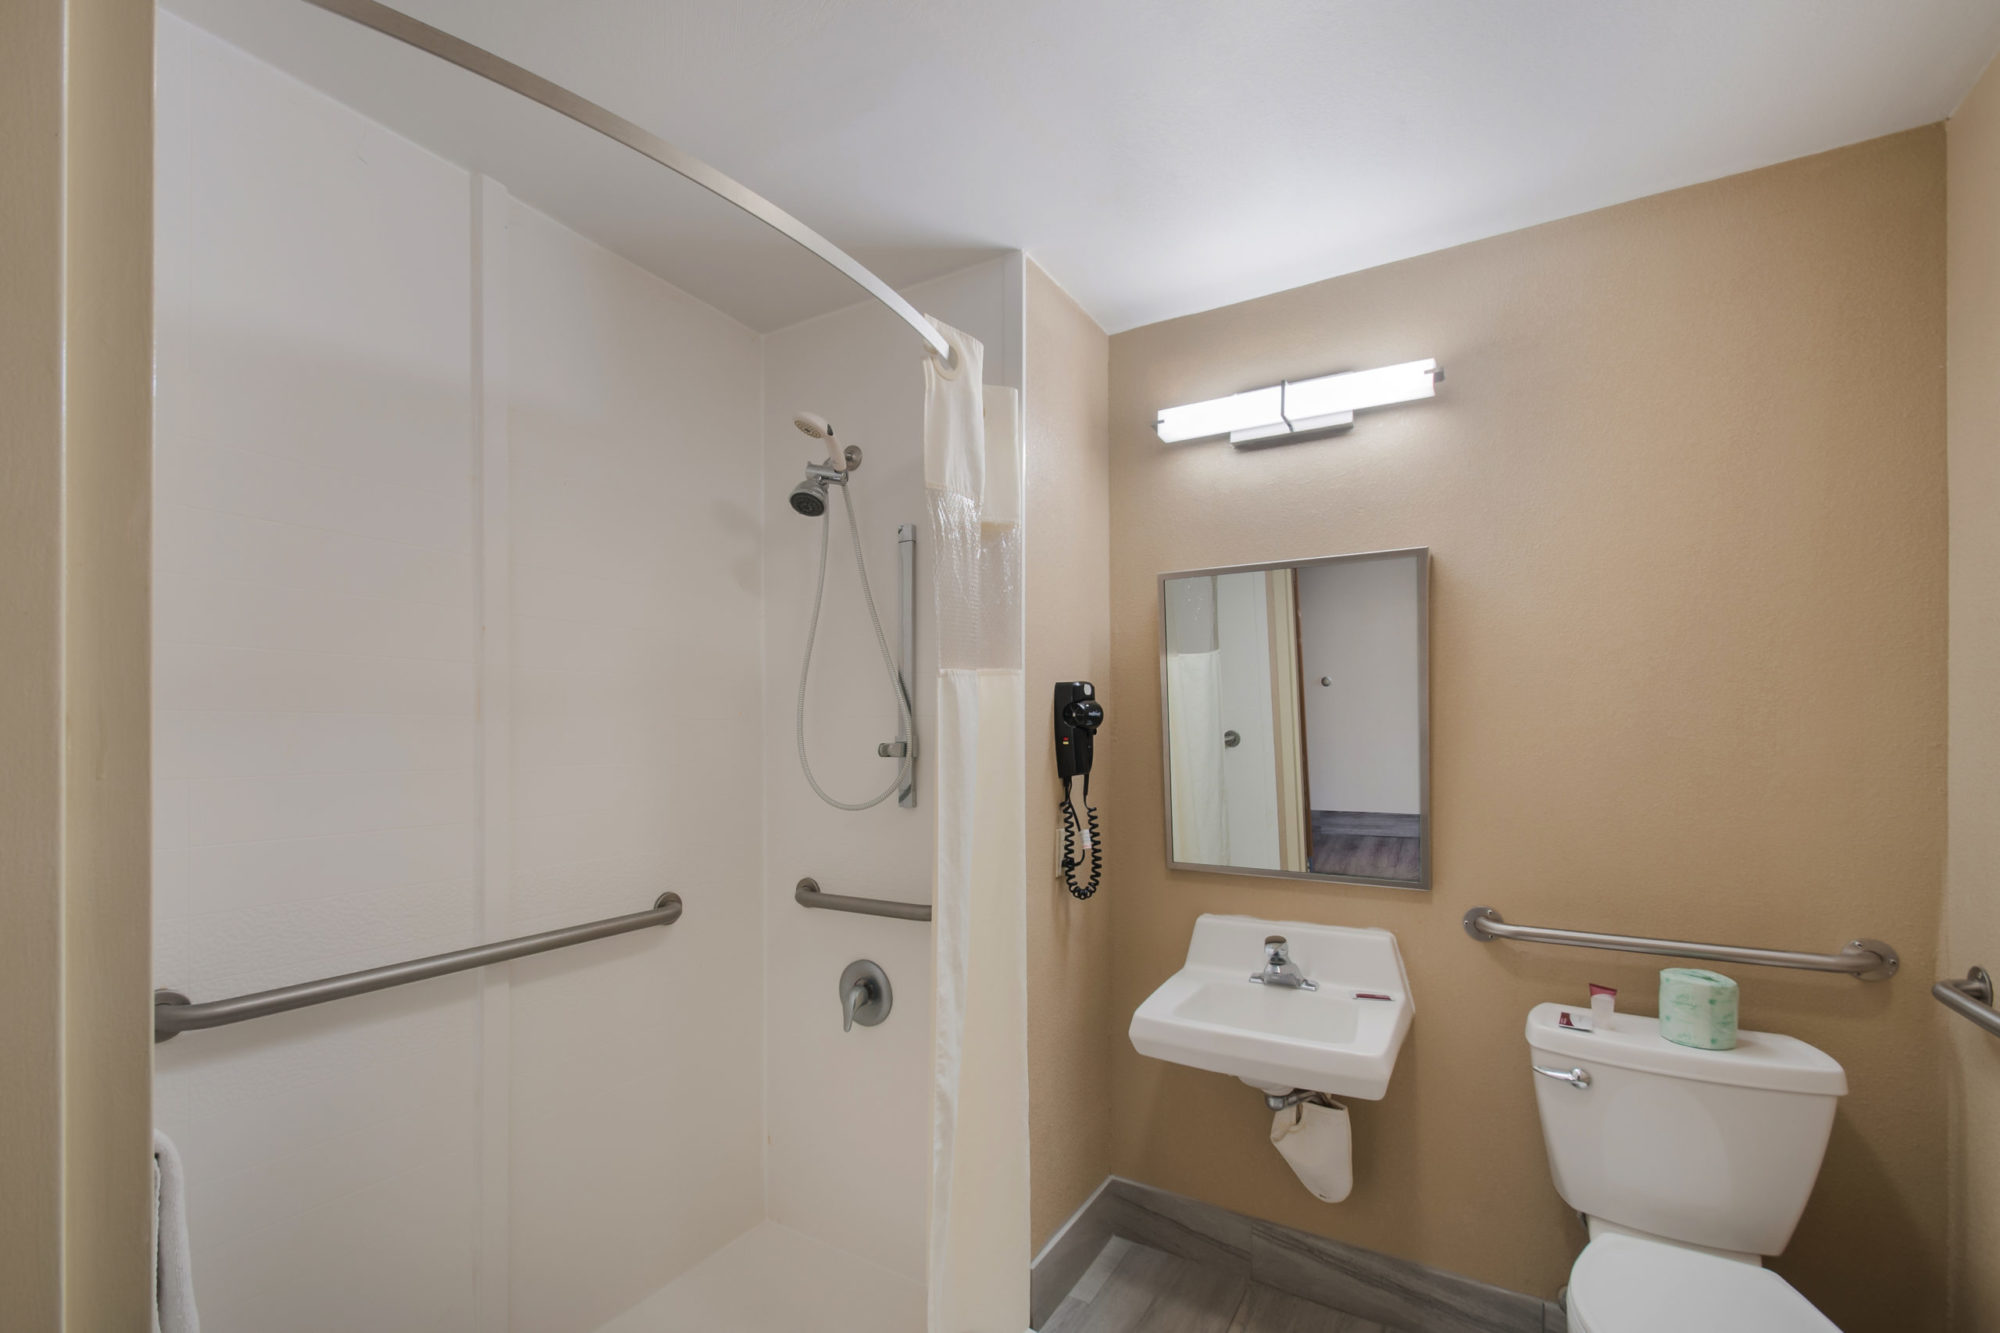 Shower Tub with grab handles and wall mounted towel rail with towel, sink, wall mounted mirroe with overhead strip light, wall mounted hair dryer, grab handles by toilet, bathroom amenities and tiled floor